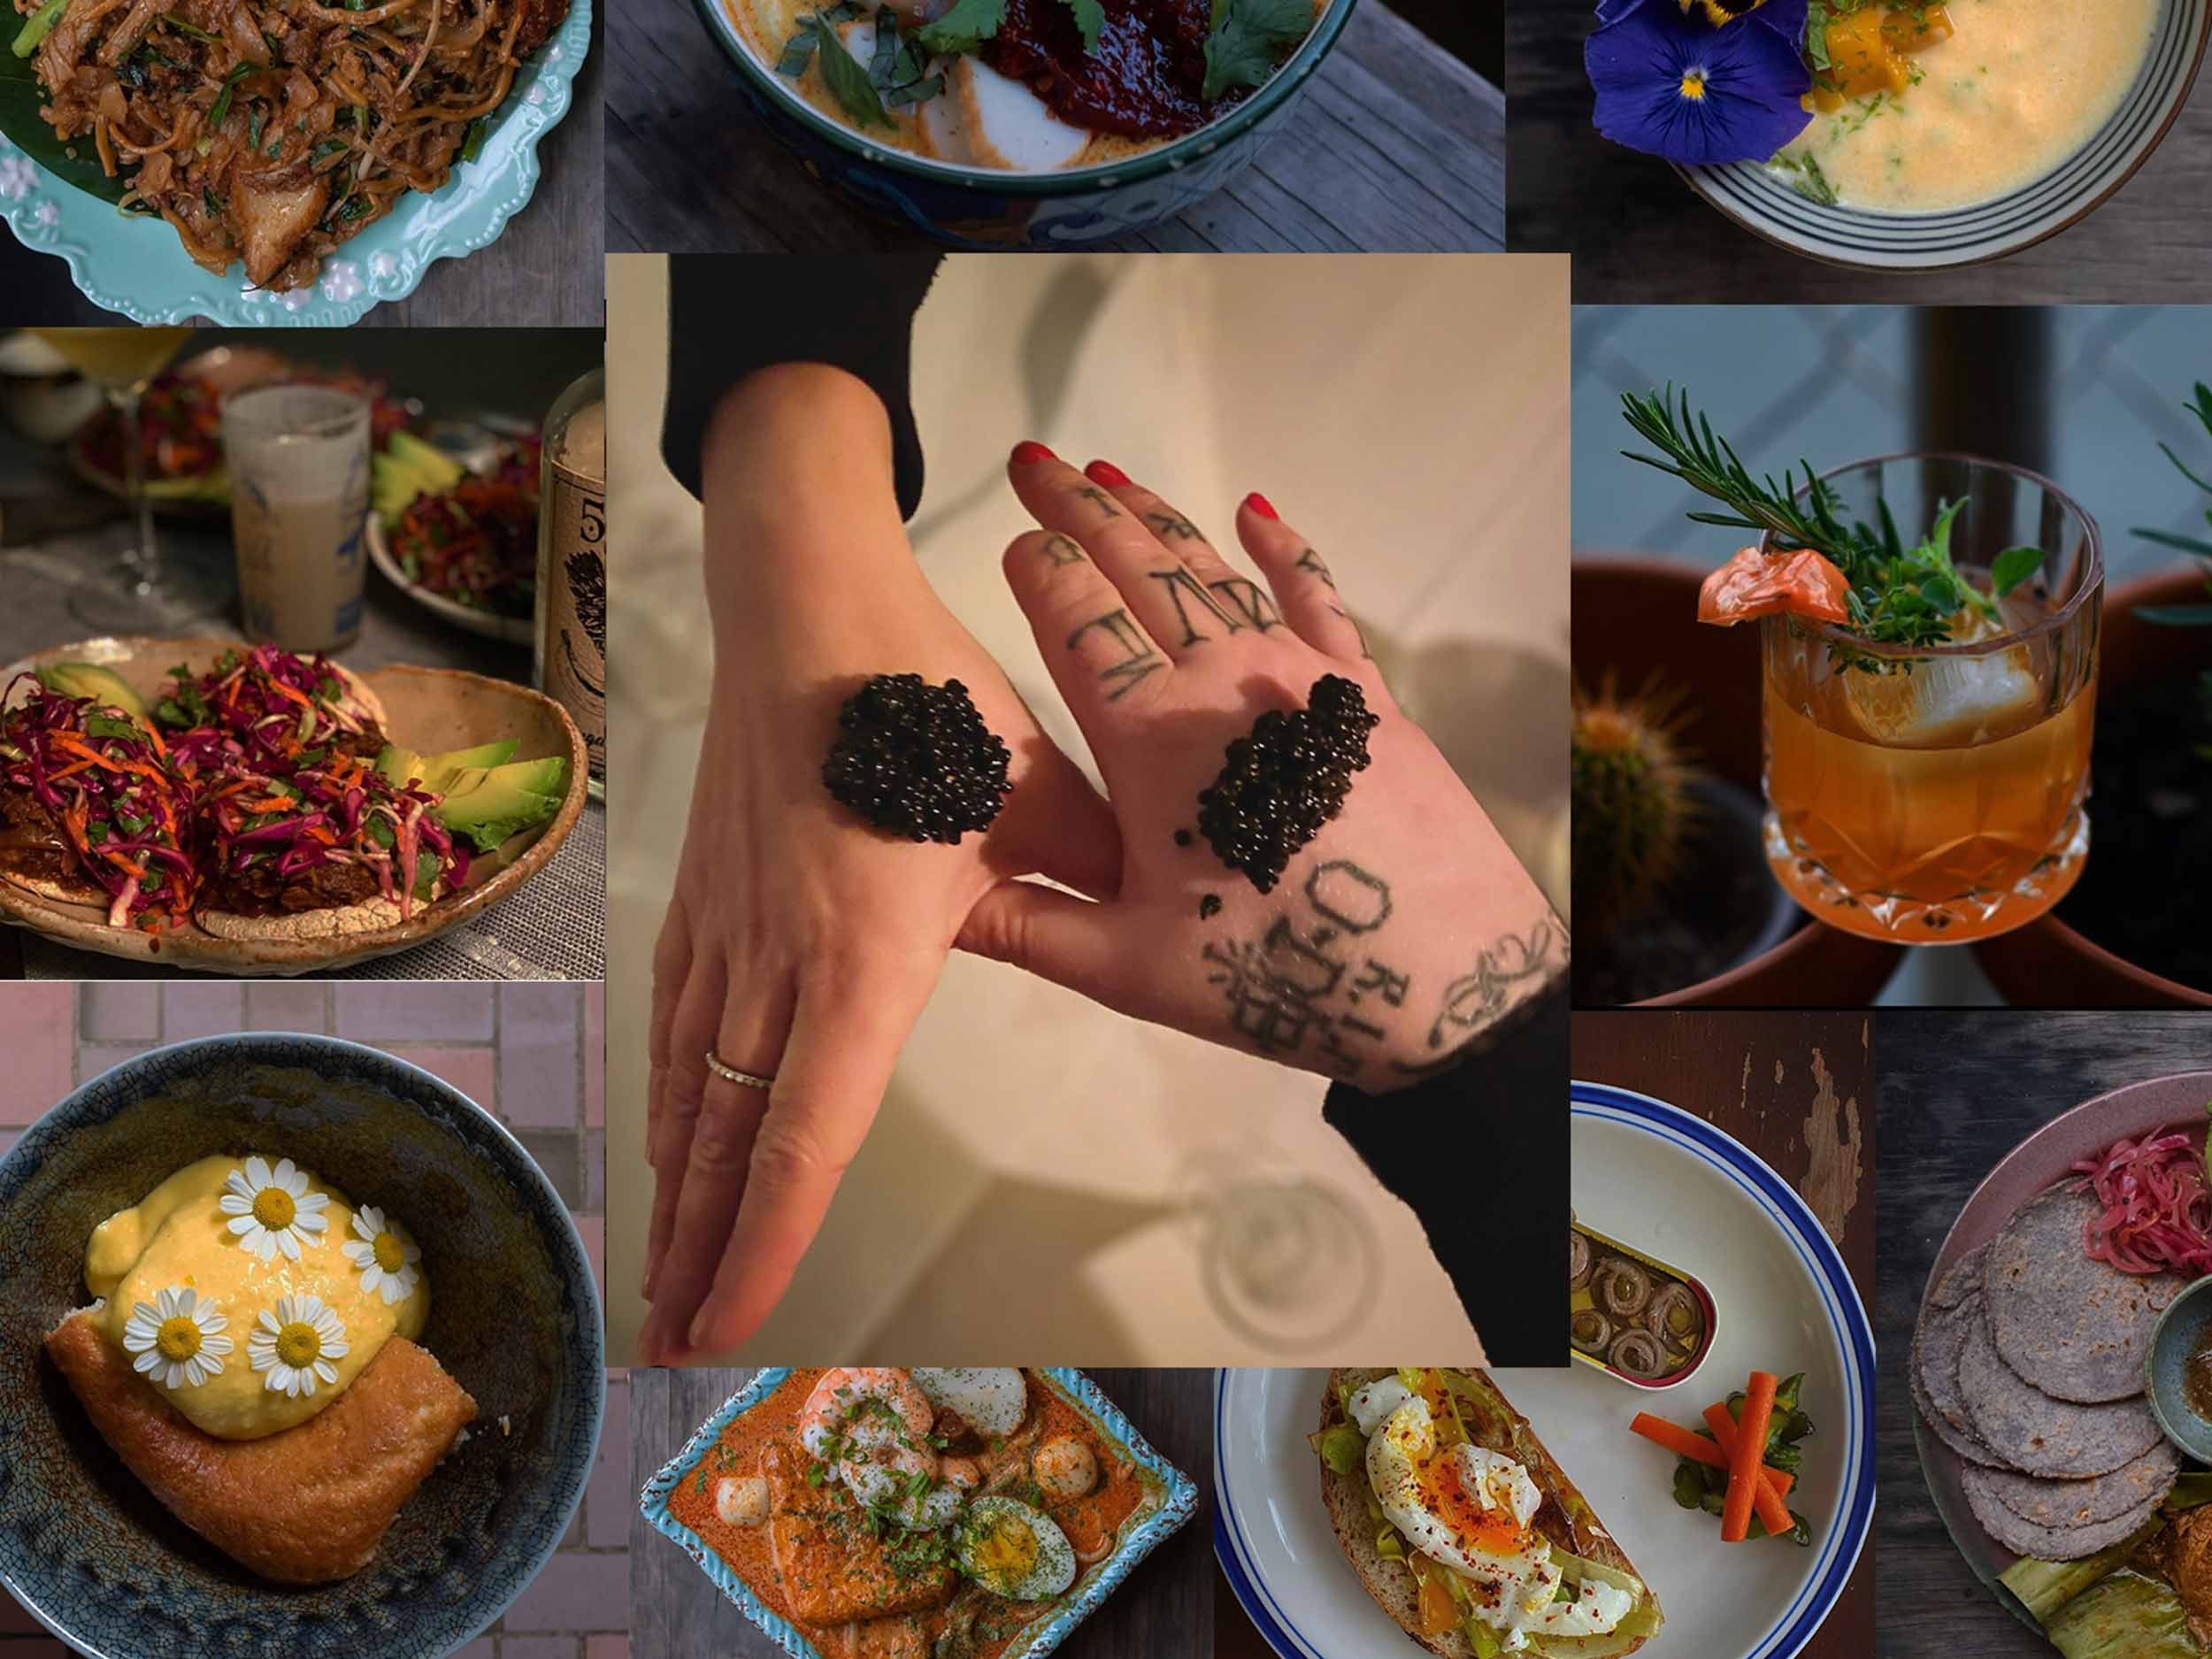 Coronappétit, Instagram's spiciest guide to dining during the pandemic